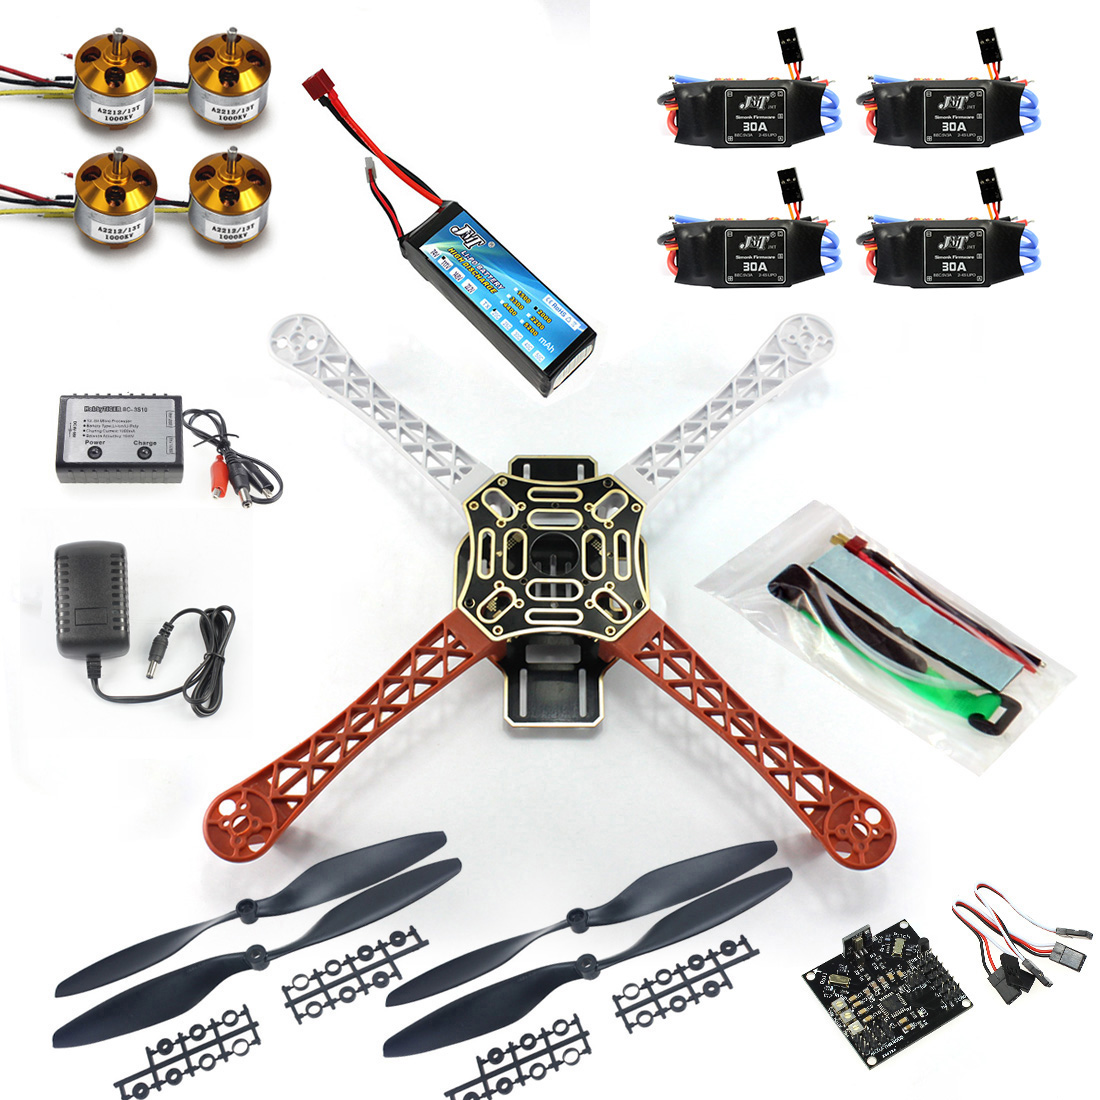 F02192-B RC Quadcopter 4 axle Drone ARF Kit No TX RX : KK V2.3 Flight Control A2212 1000KV Motor <font><b>30A</b></font> <font><b>ESC</b></font> Lipo F450 Flamewheel Fs image